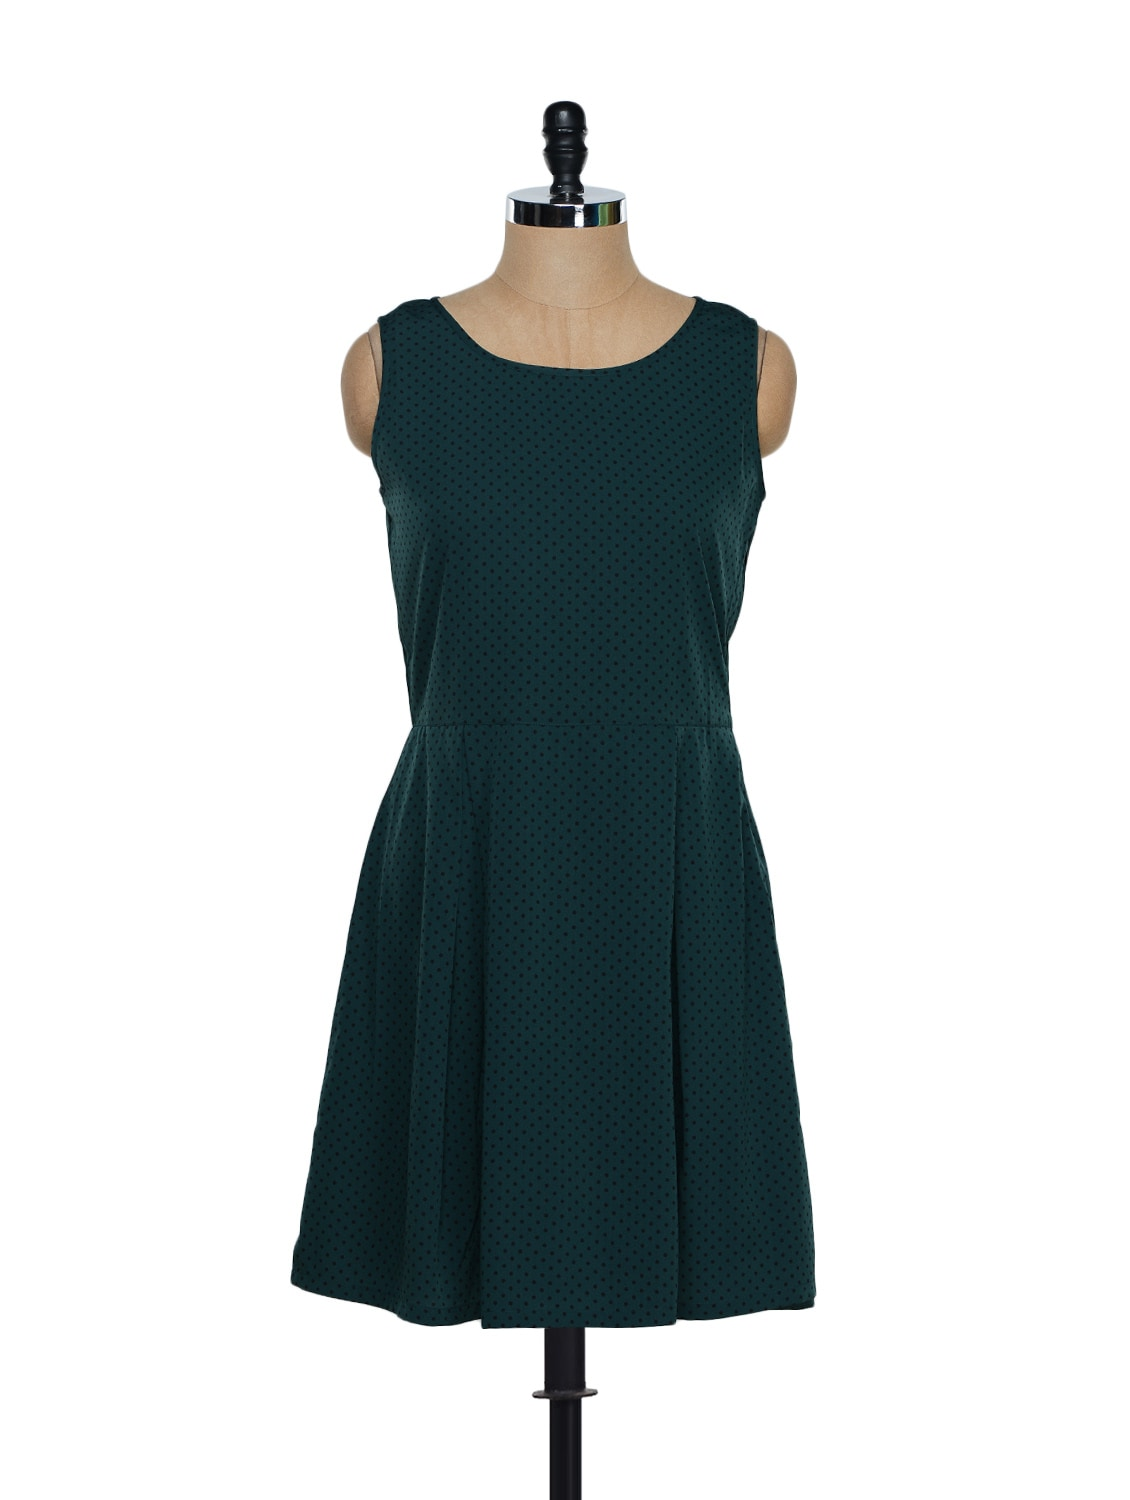 Green Polka Dot Dress - Eavan